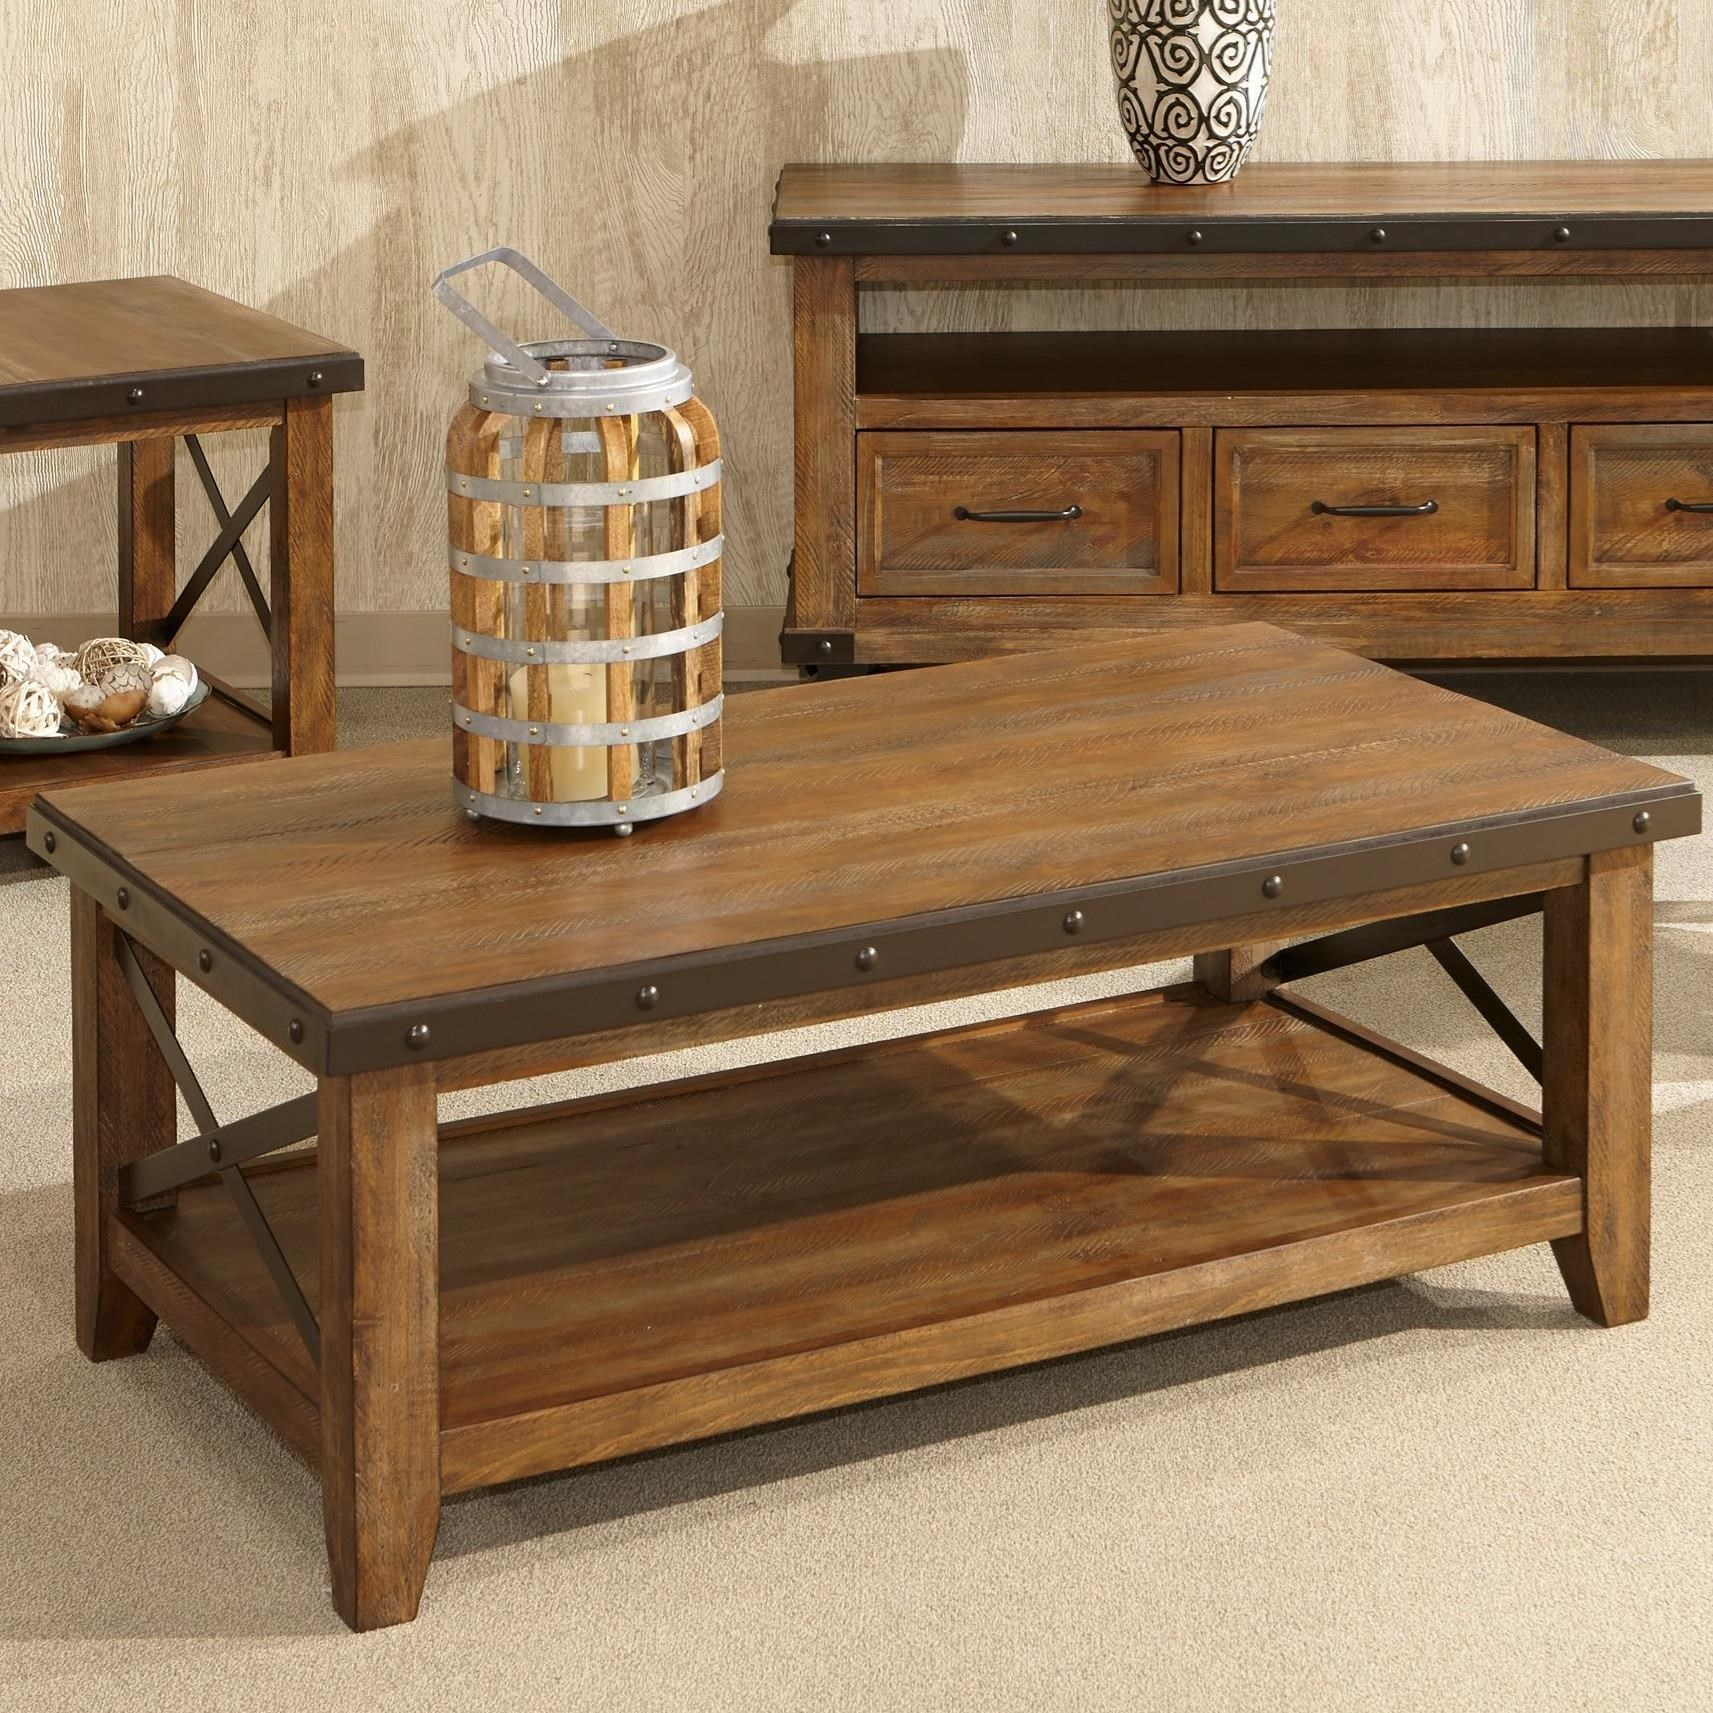 Home Furniture Distribution Center: Intercon Taos Rustic Coffee Table With Metal Accents